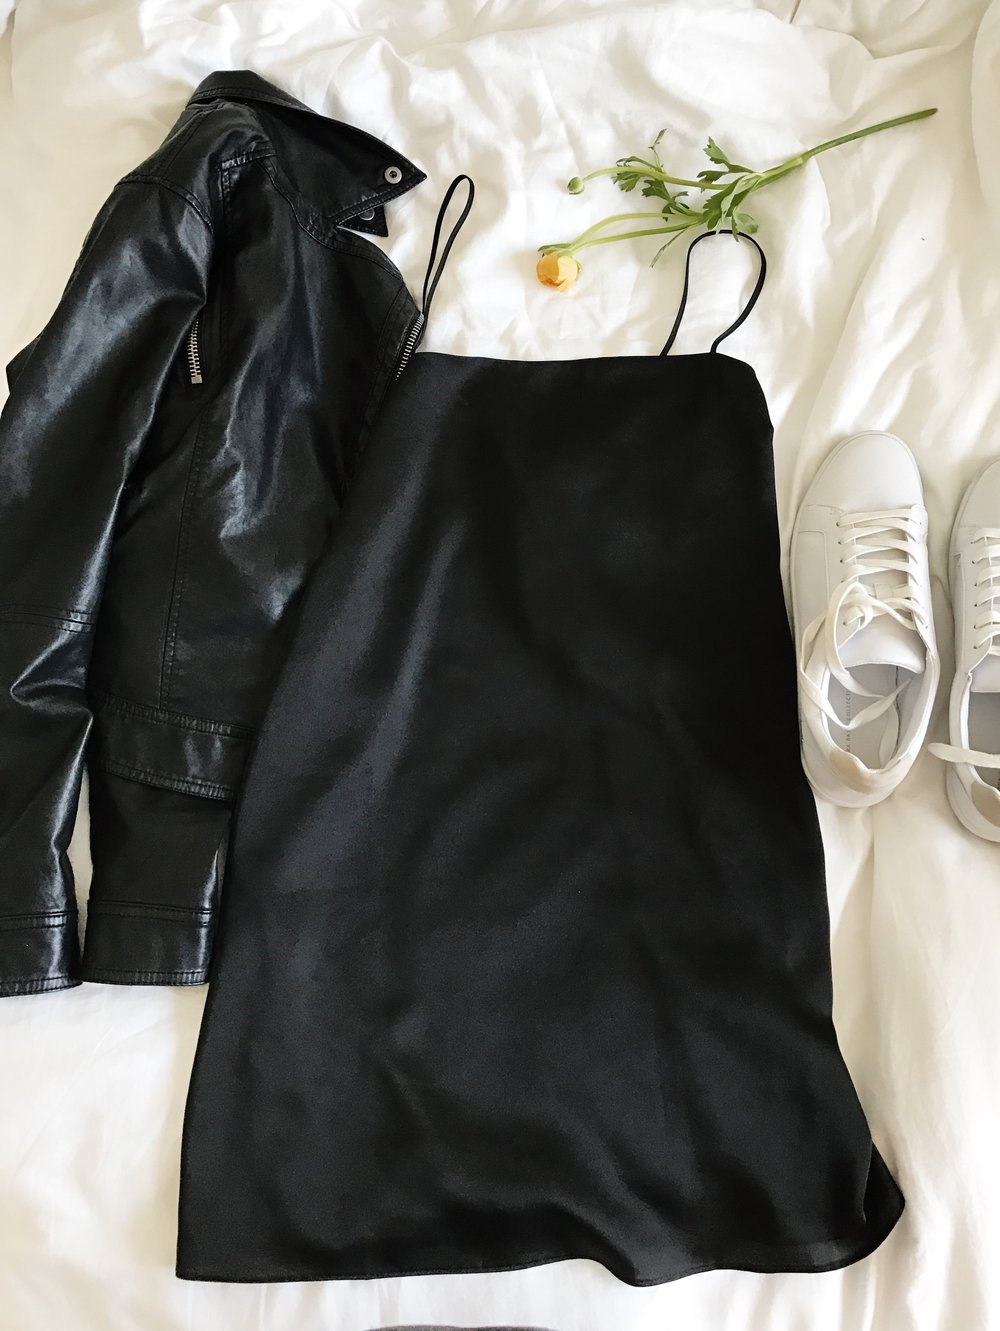 DAY FIVE Black slip dress // Leather jacket I just love a good slip dress! Adding a little edge for wandering the palace of Versailles.